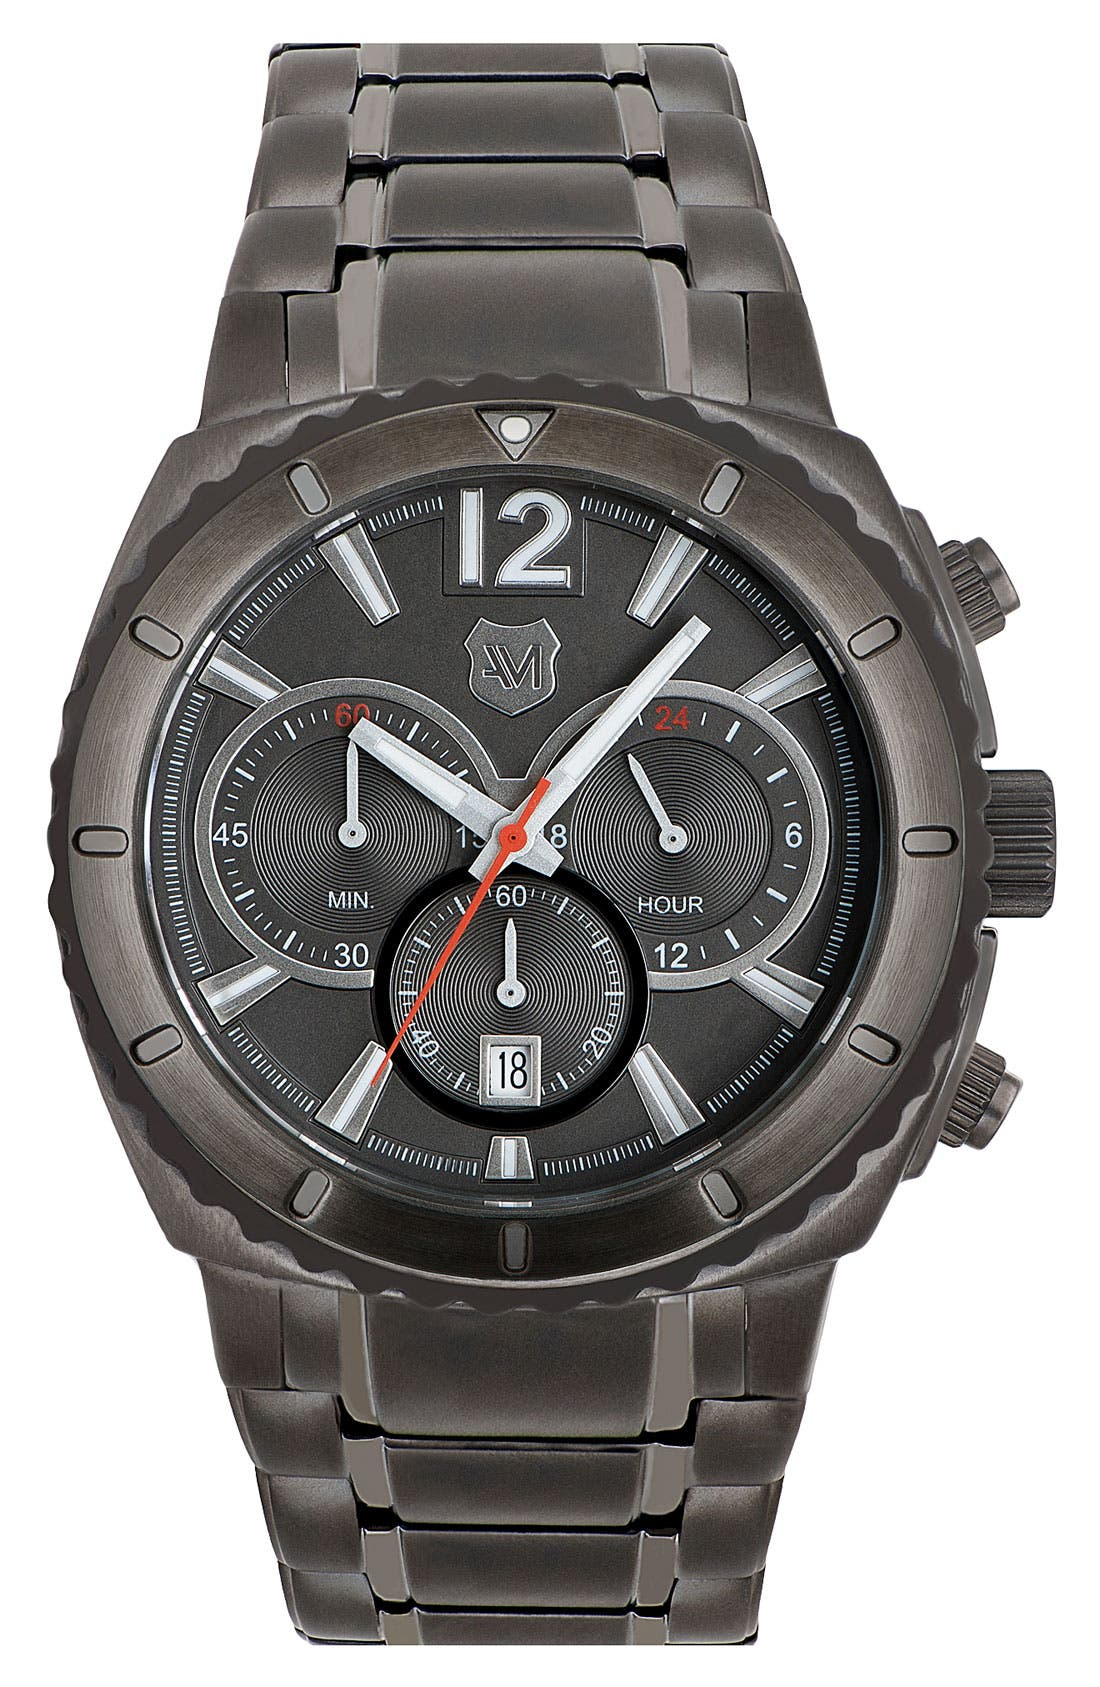 Alternate Image 1 Selected - Andrew Marc Watches 'Heritage Scuba' Chronograph Bracelet Watch